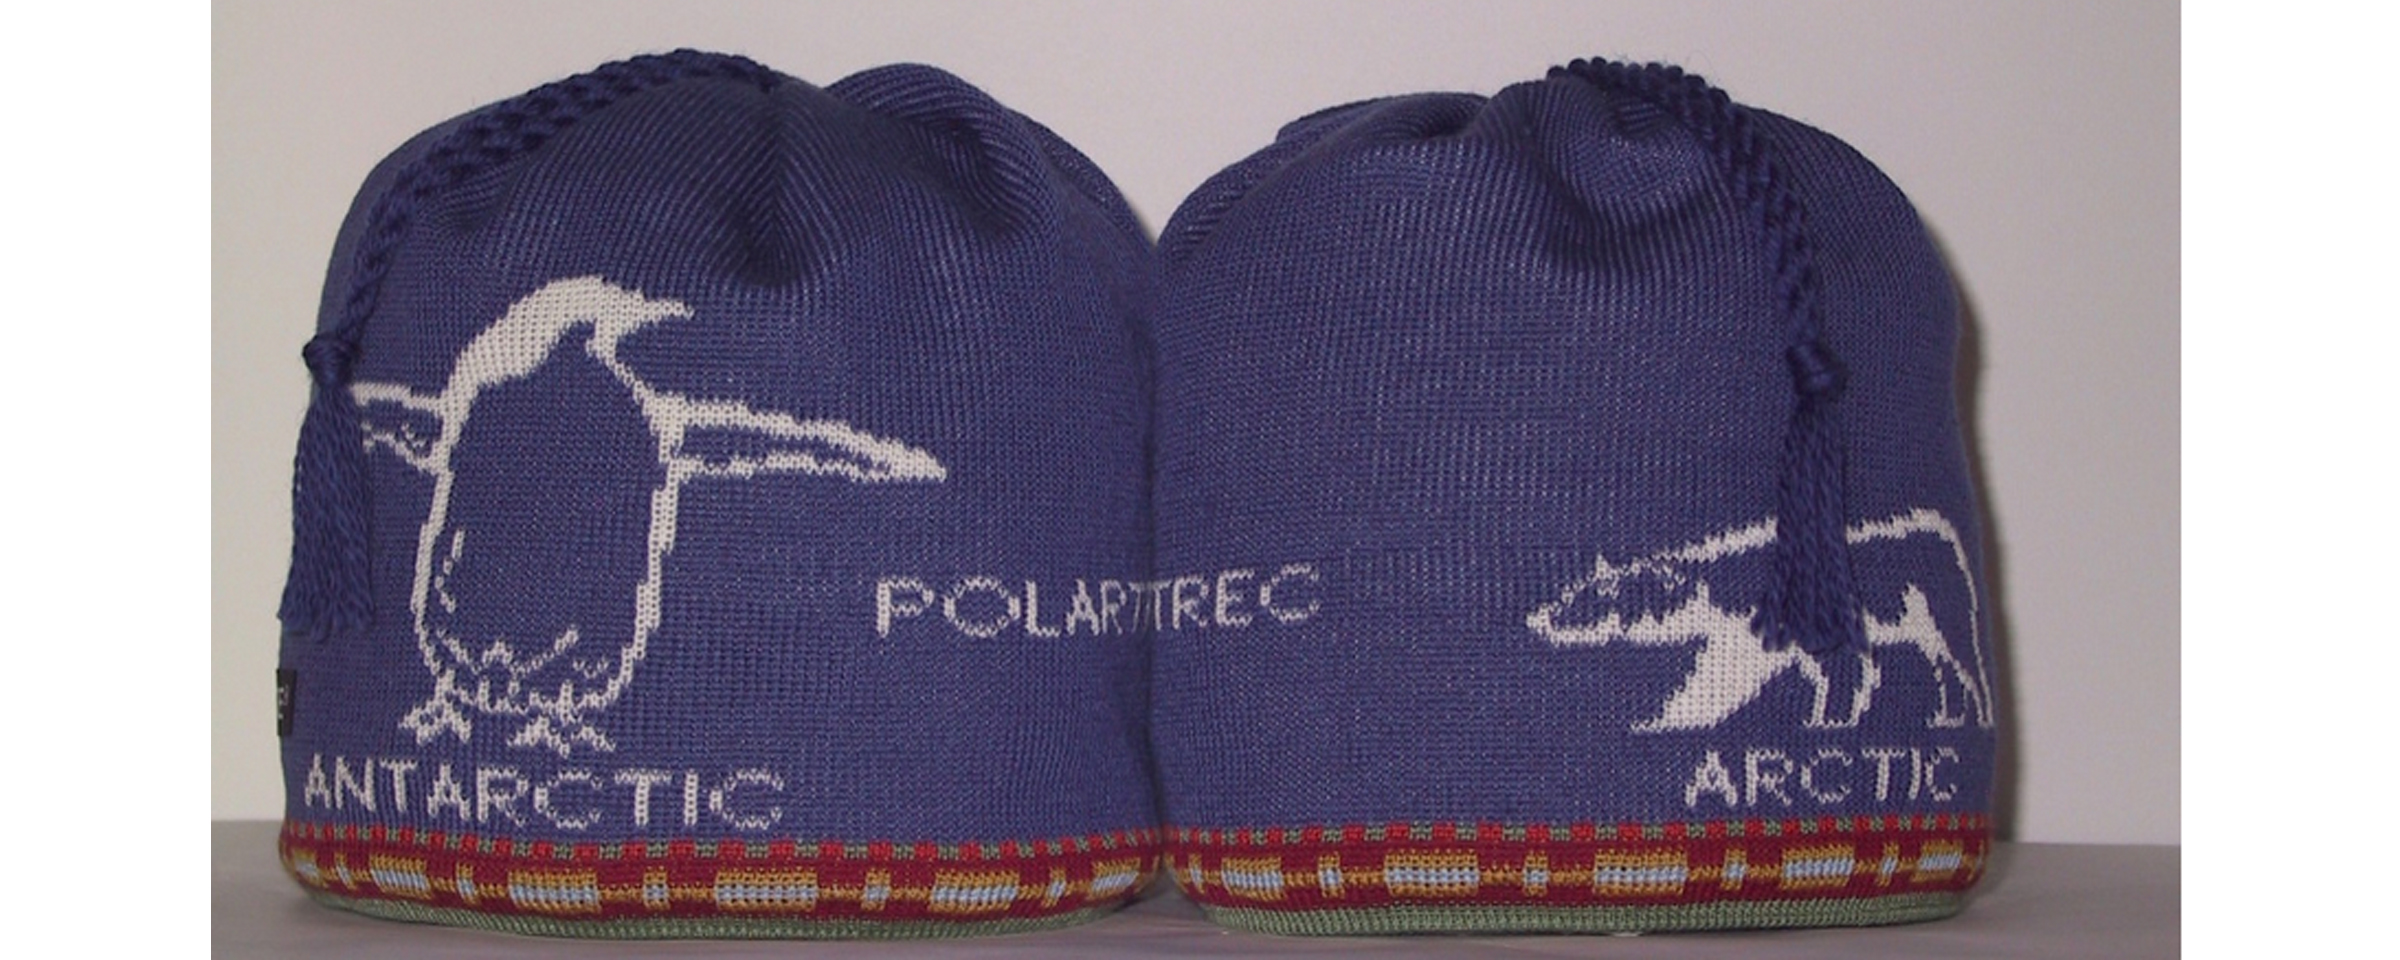 Beanies With A Cause